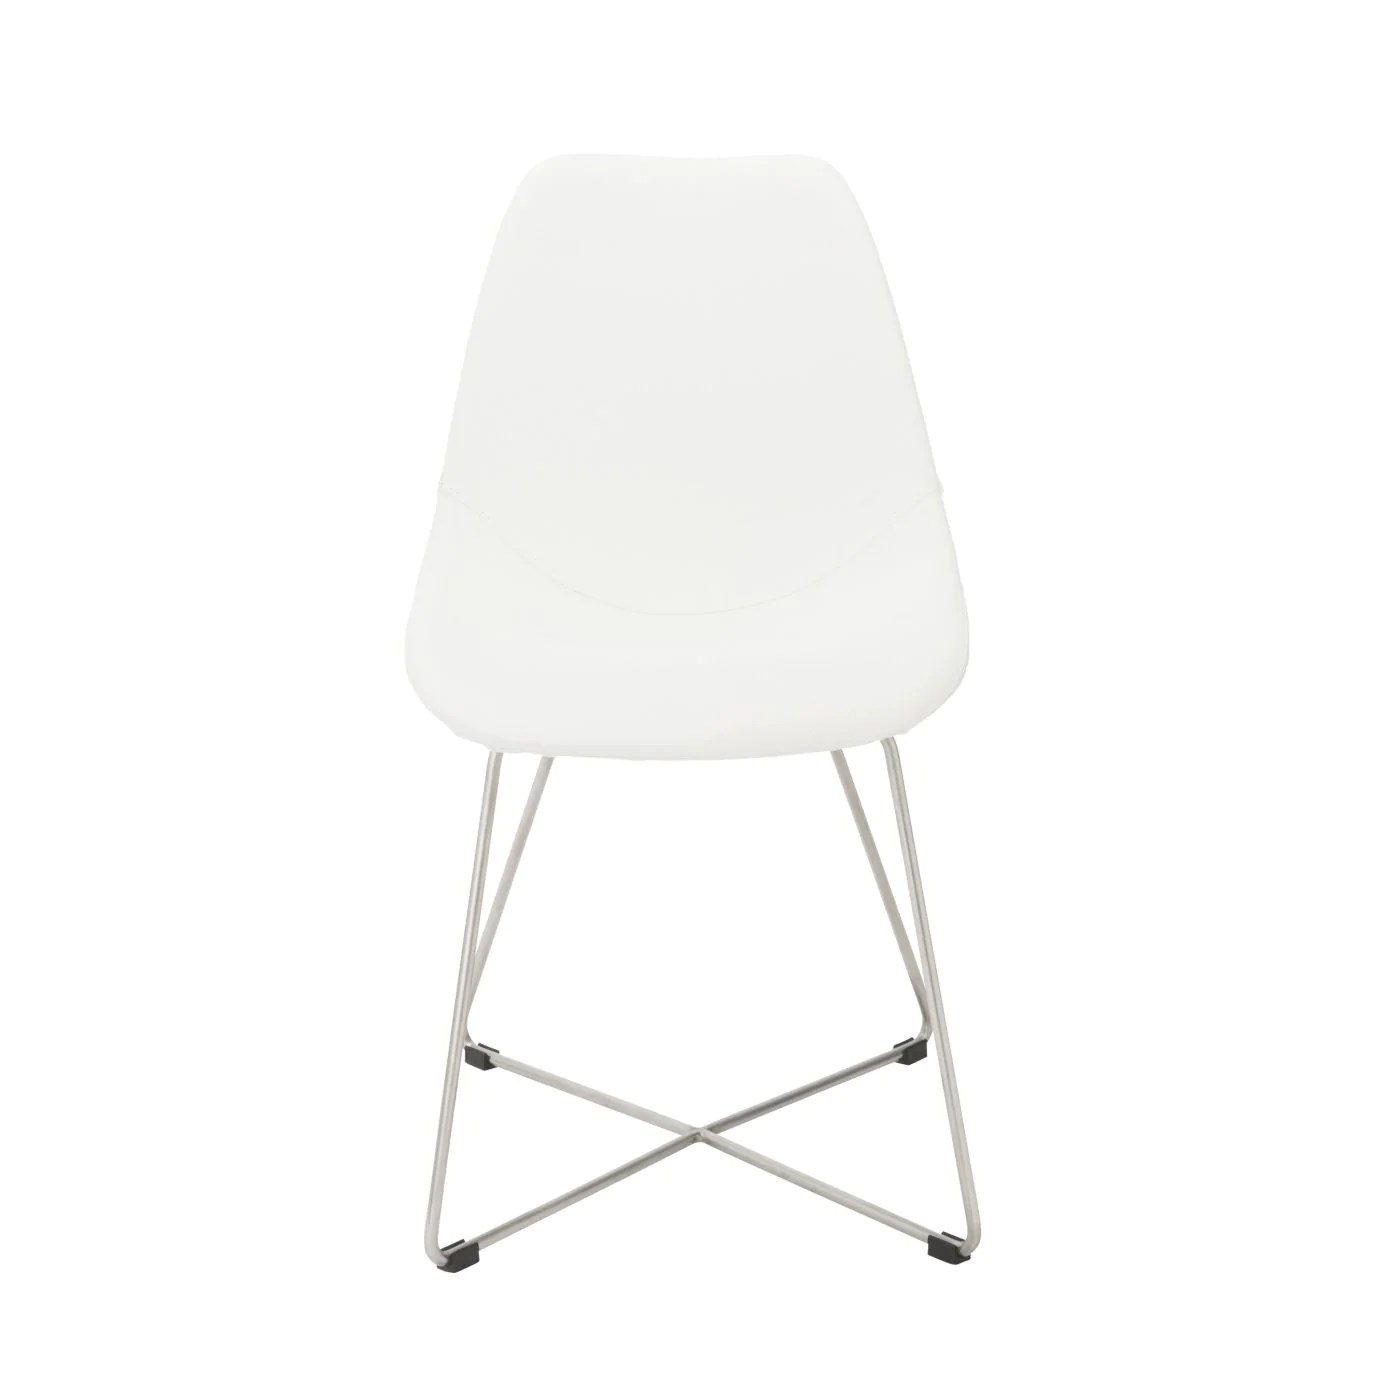 dining chairs with stainless steel legs room and board pike chair euro style anahita in white polyurethane